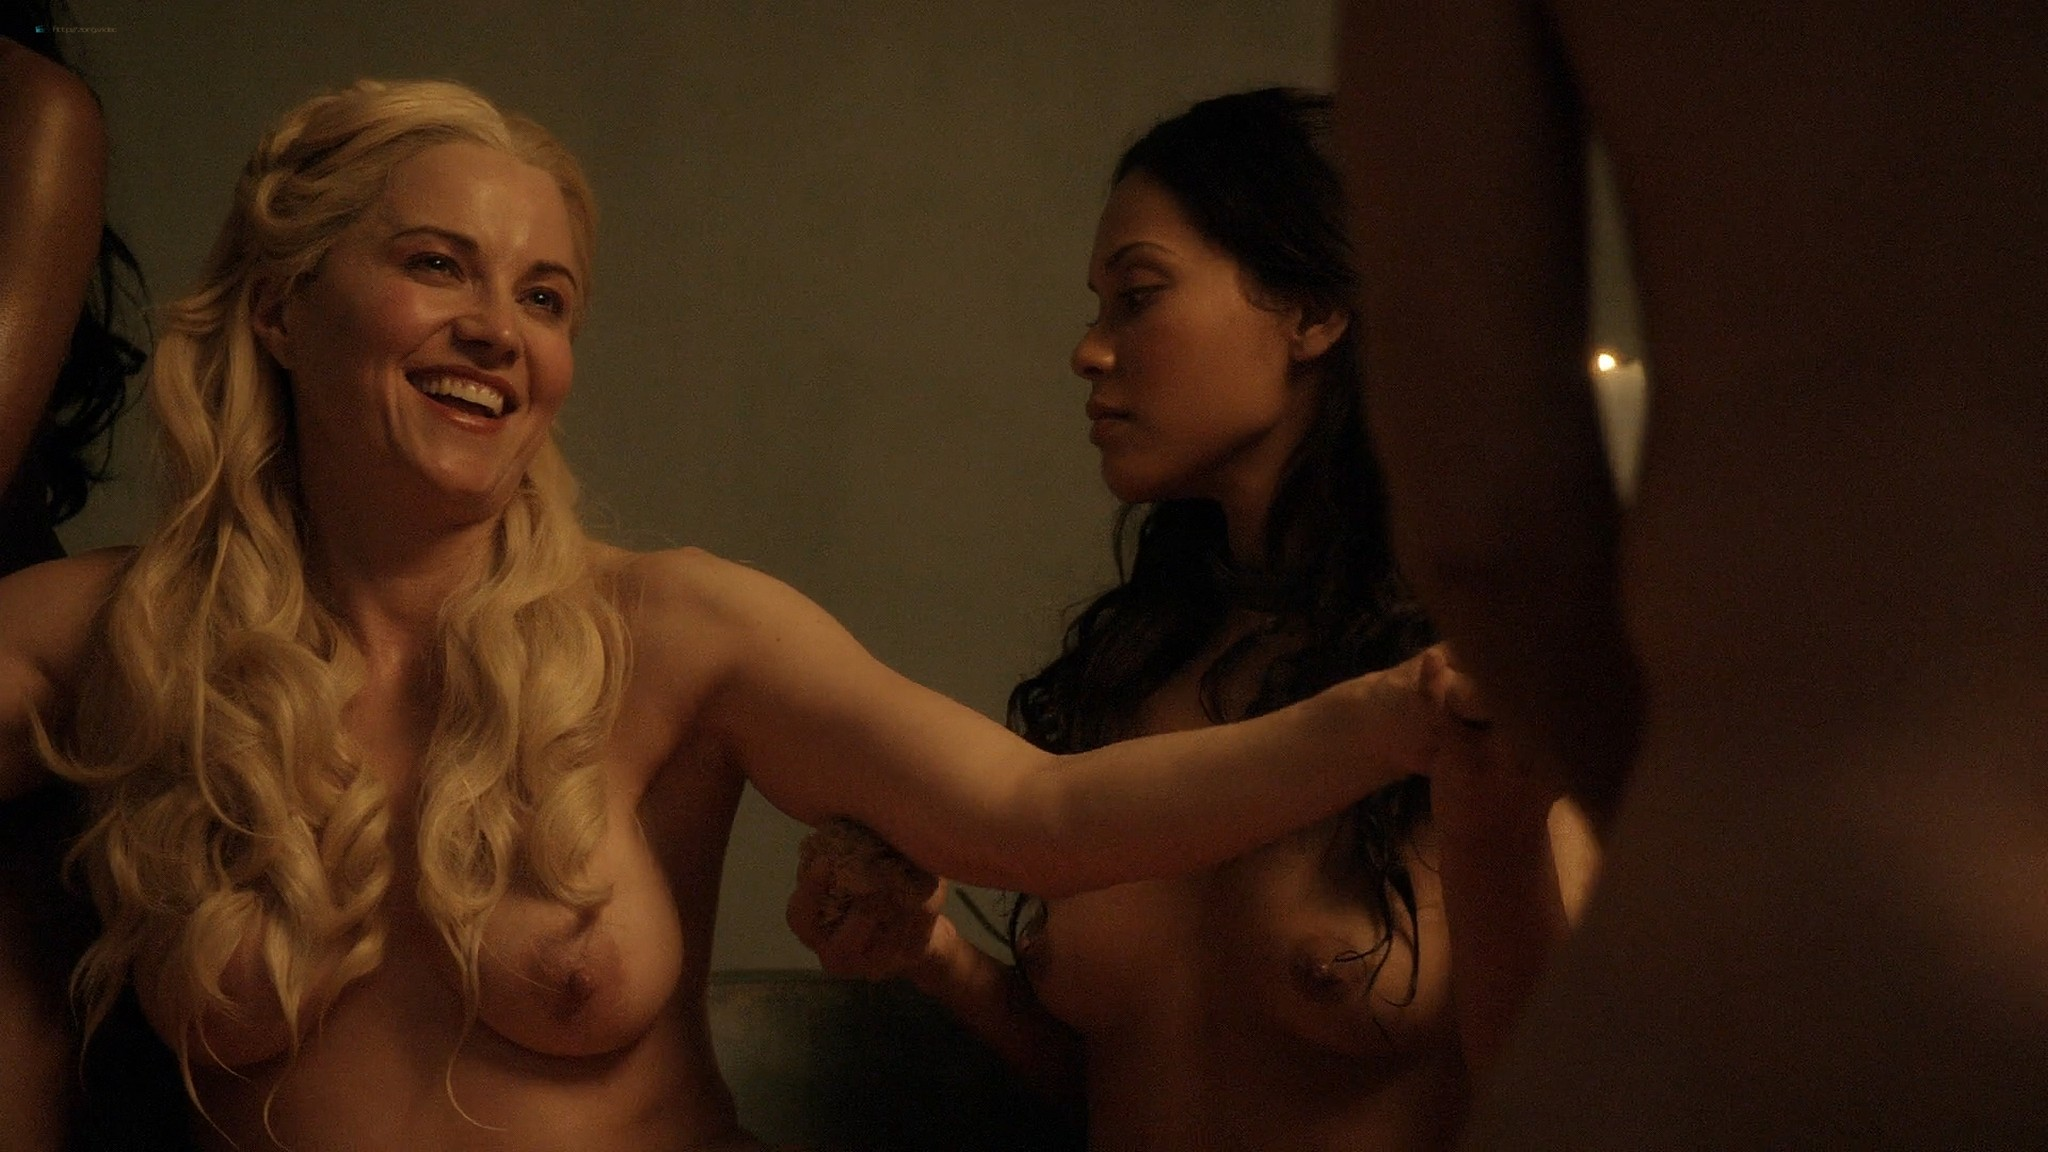 Lucy Lawless nude Lesley-Ann Brandt and other nude sex too - Spartacus (2010) Delicate Things s1e6 HD 1080p BluRay (11)